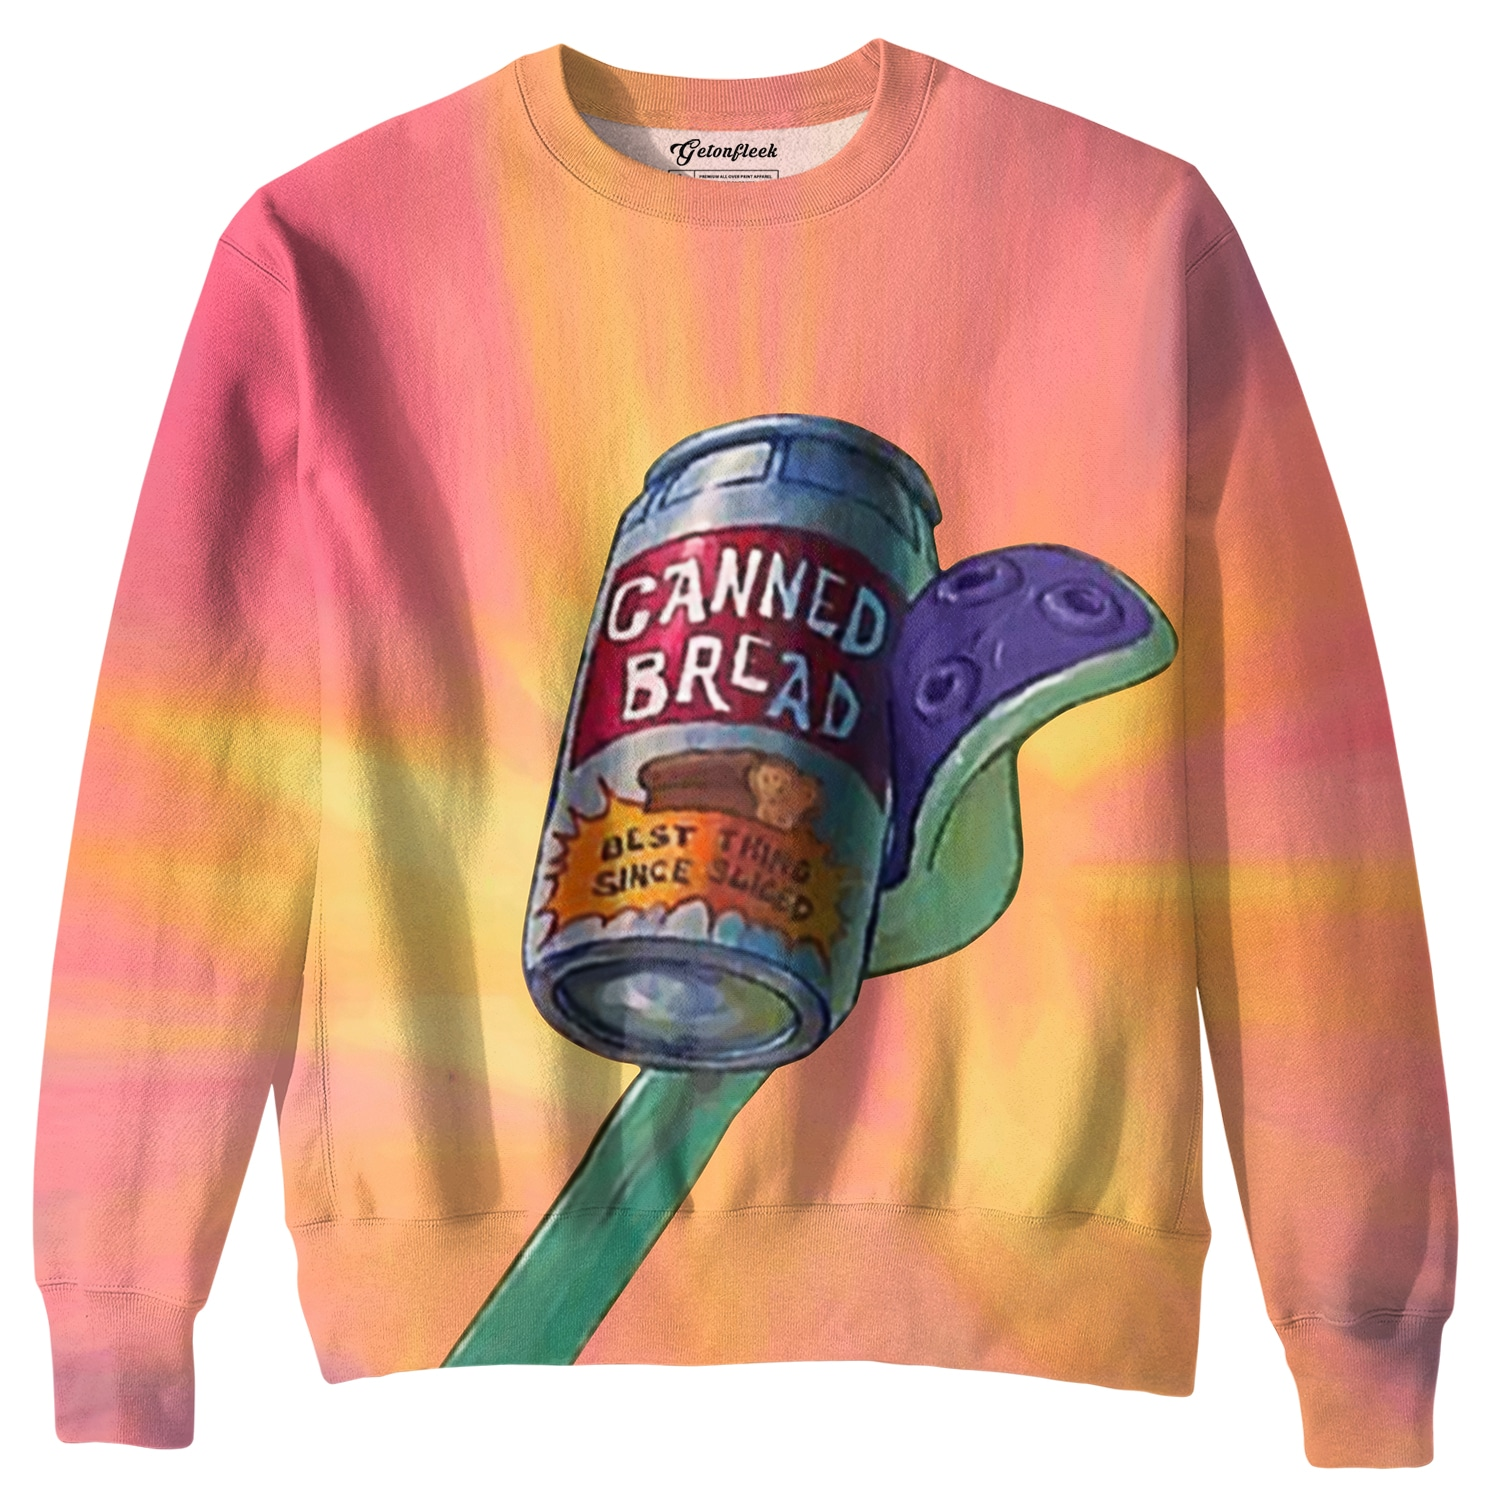 904b2b5e Canned Bread Crewneck - All Over Print Apparel - Getonfleek